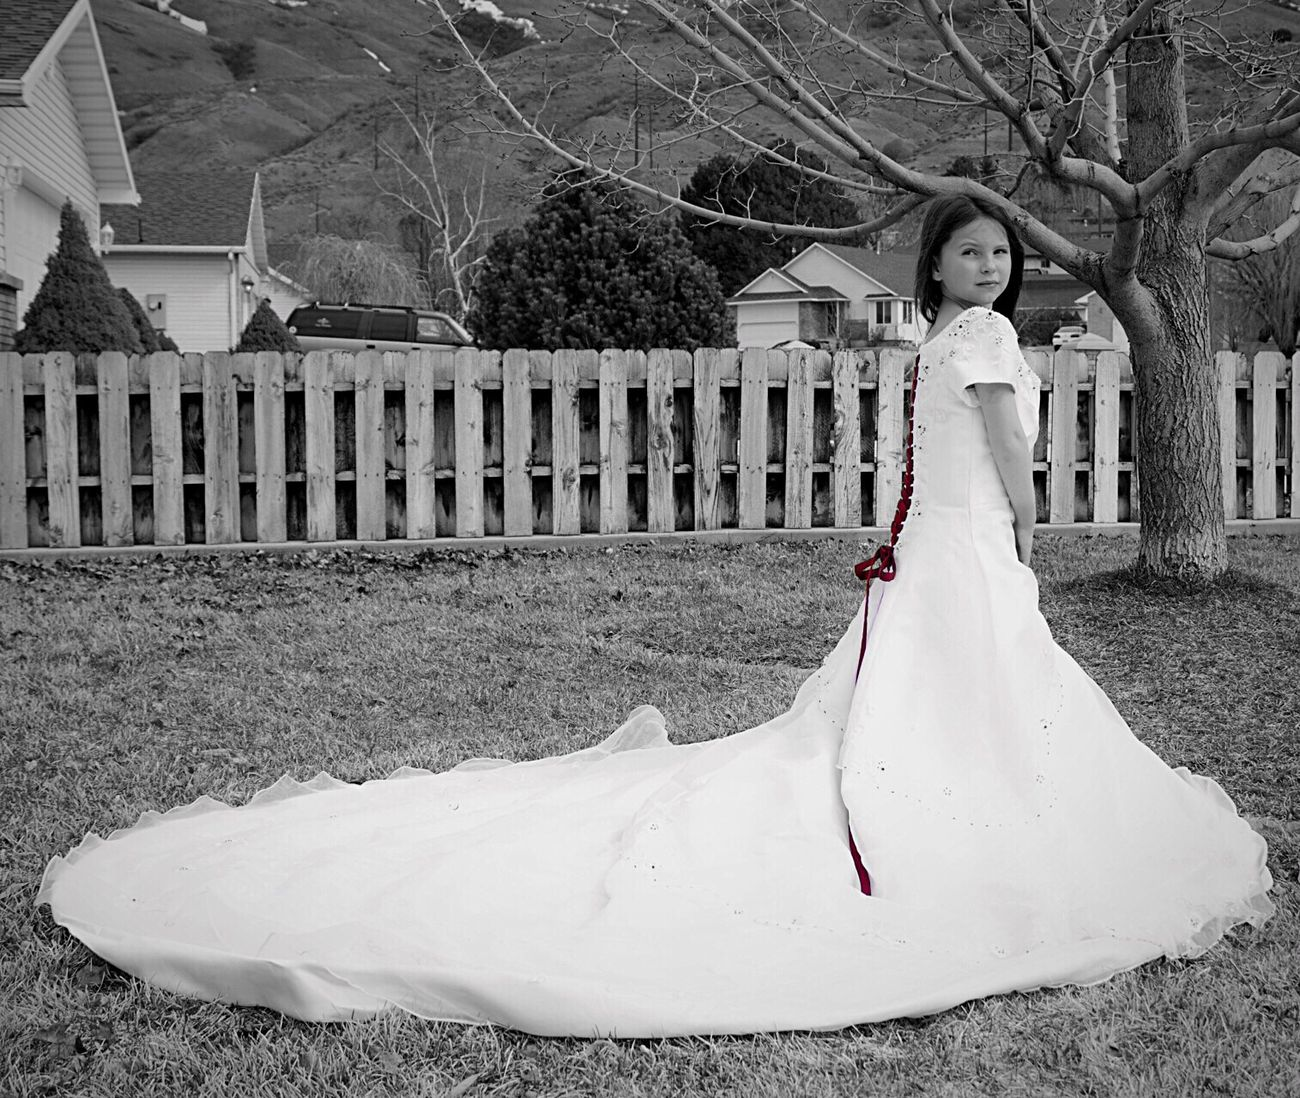 Wedding Dress Mamas Girl Love ♥ Pretty Girl Outside Photography